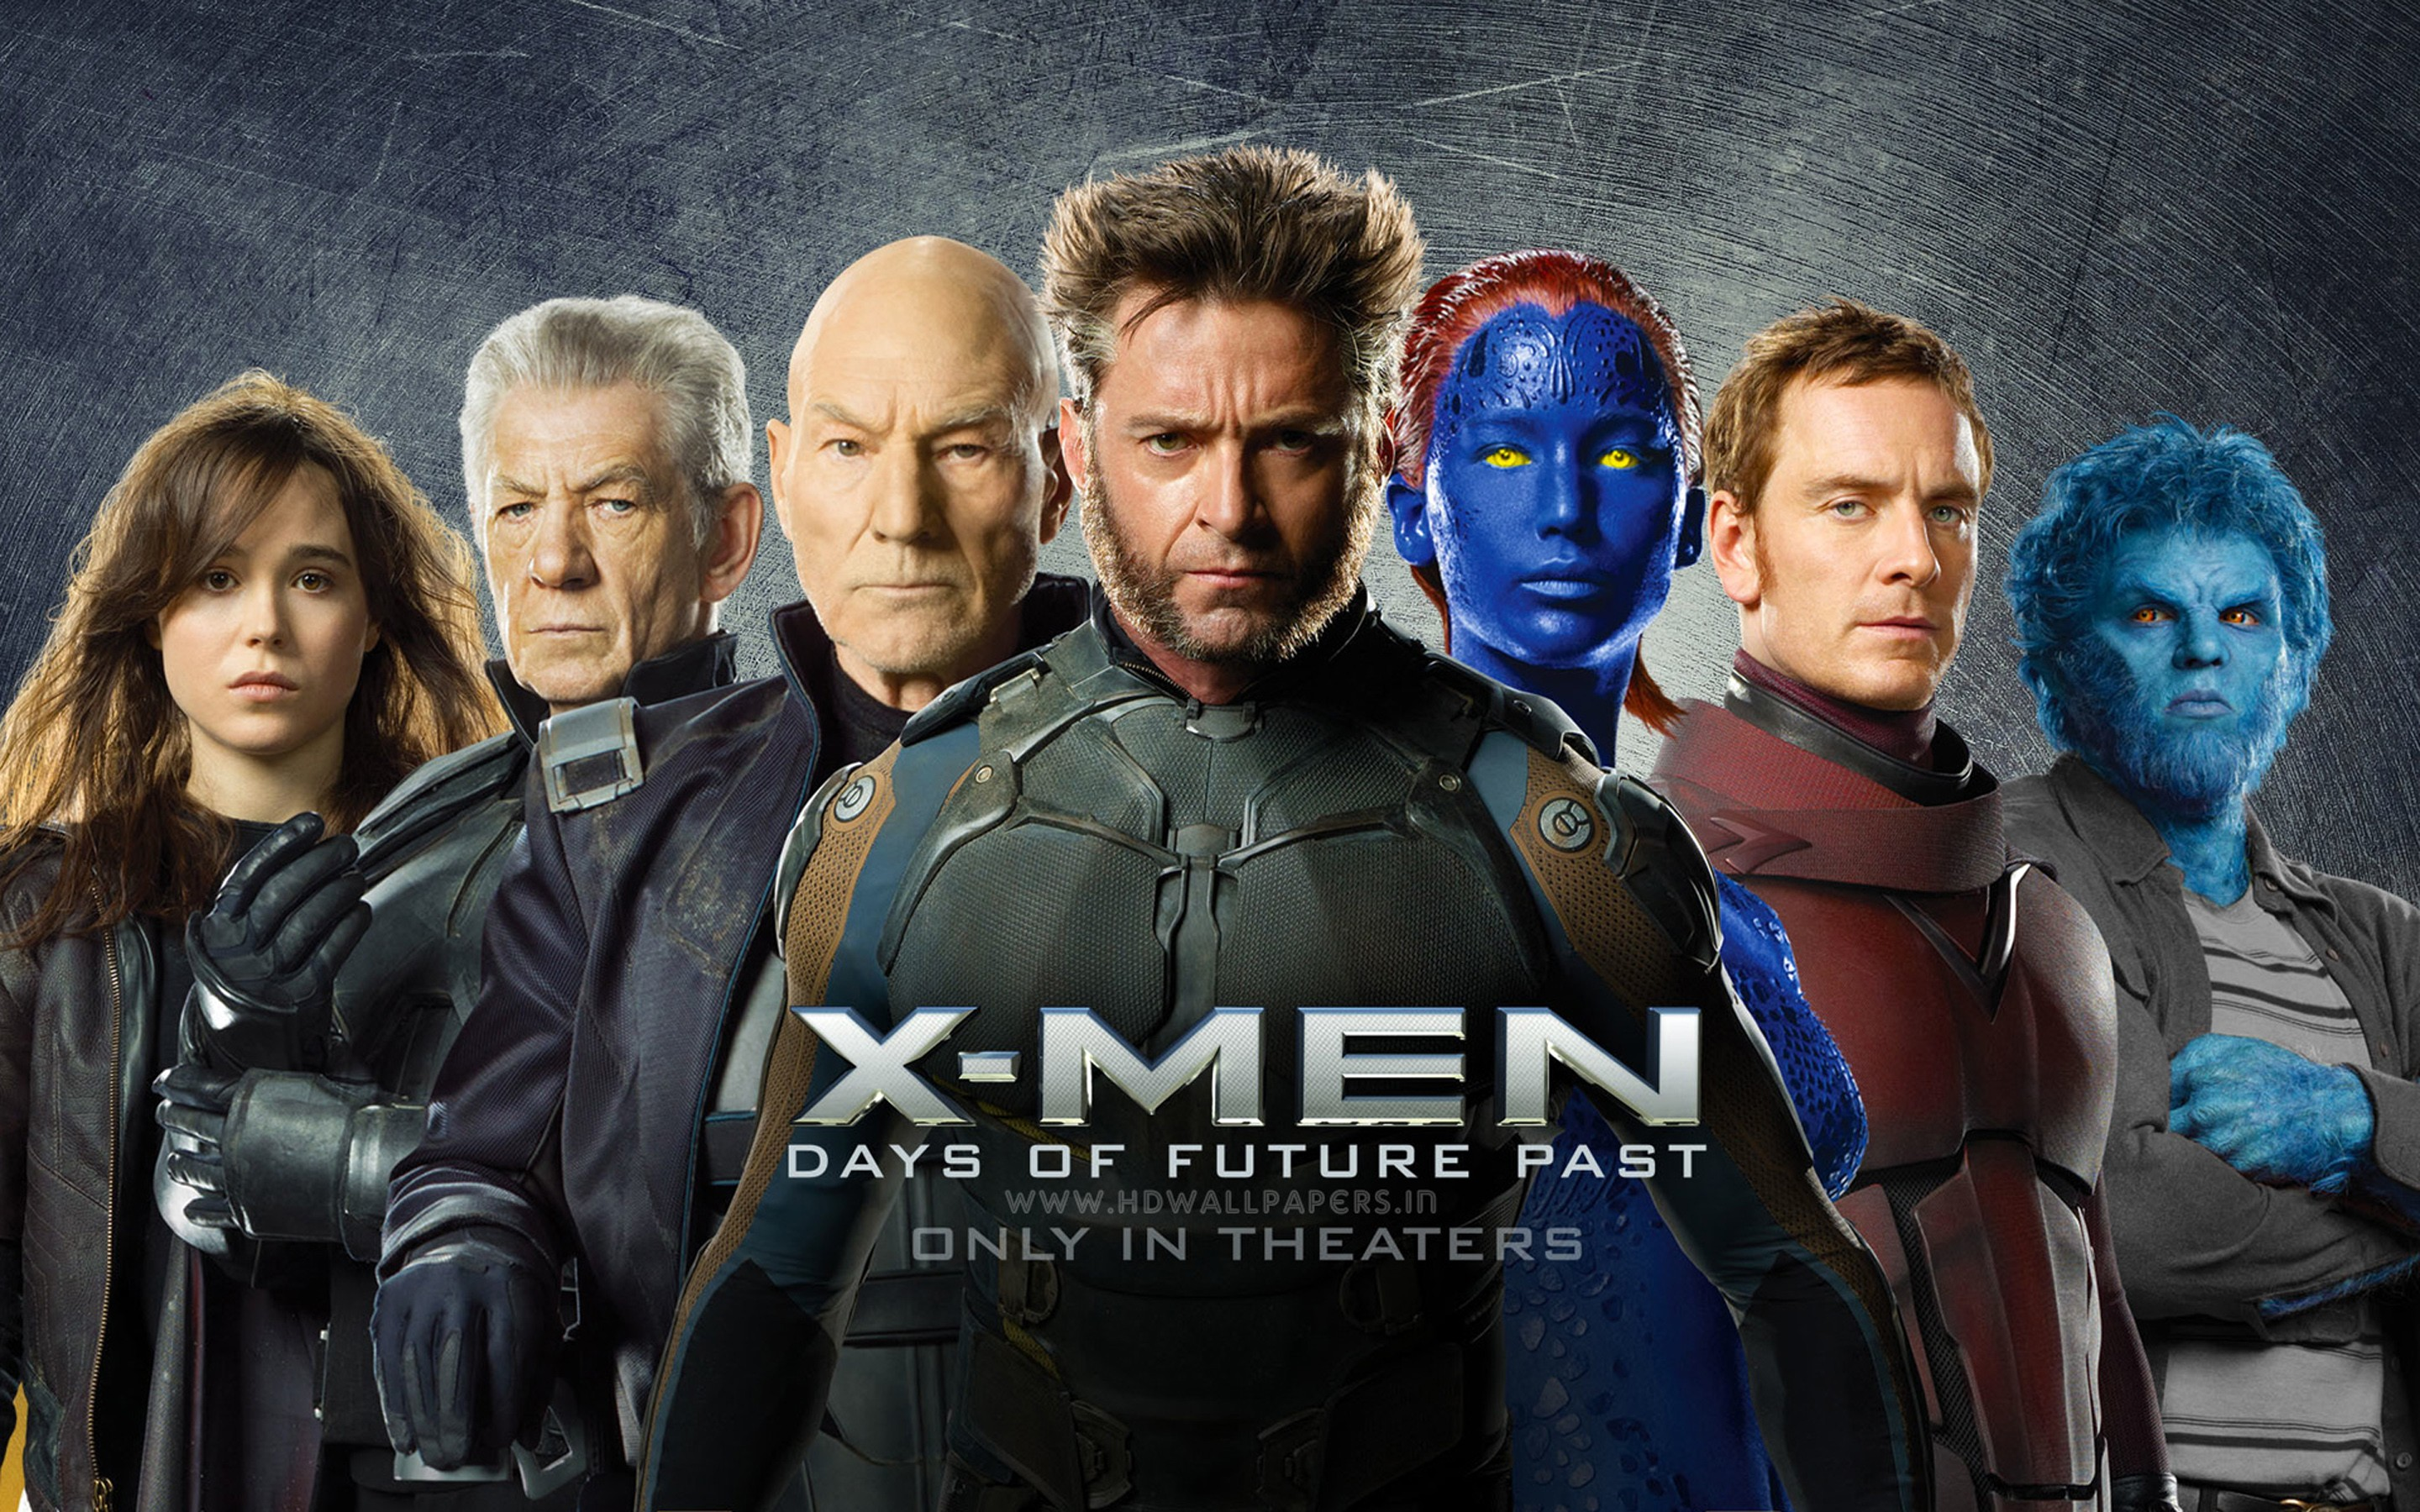 X Men Days of Future Past 2014 Photo Wallpapers   New HD 2880x1800